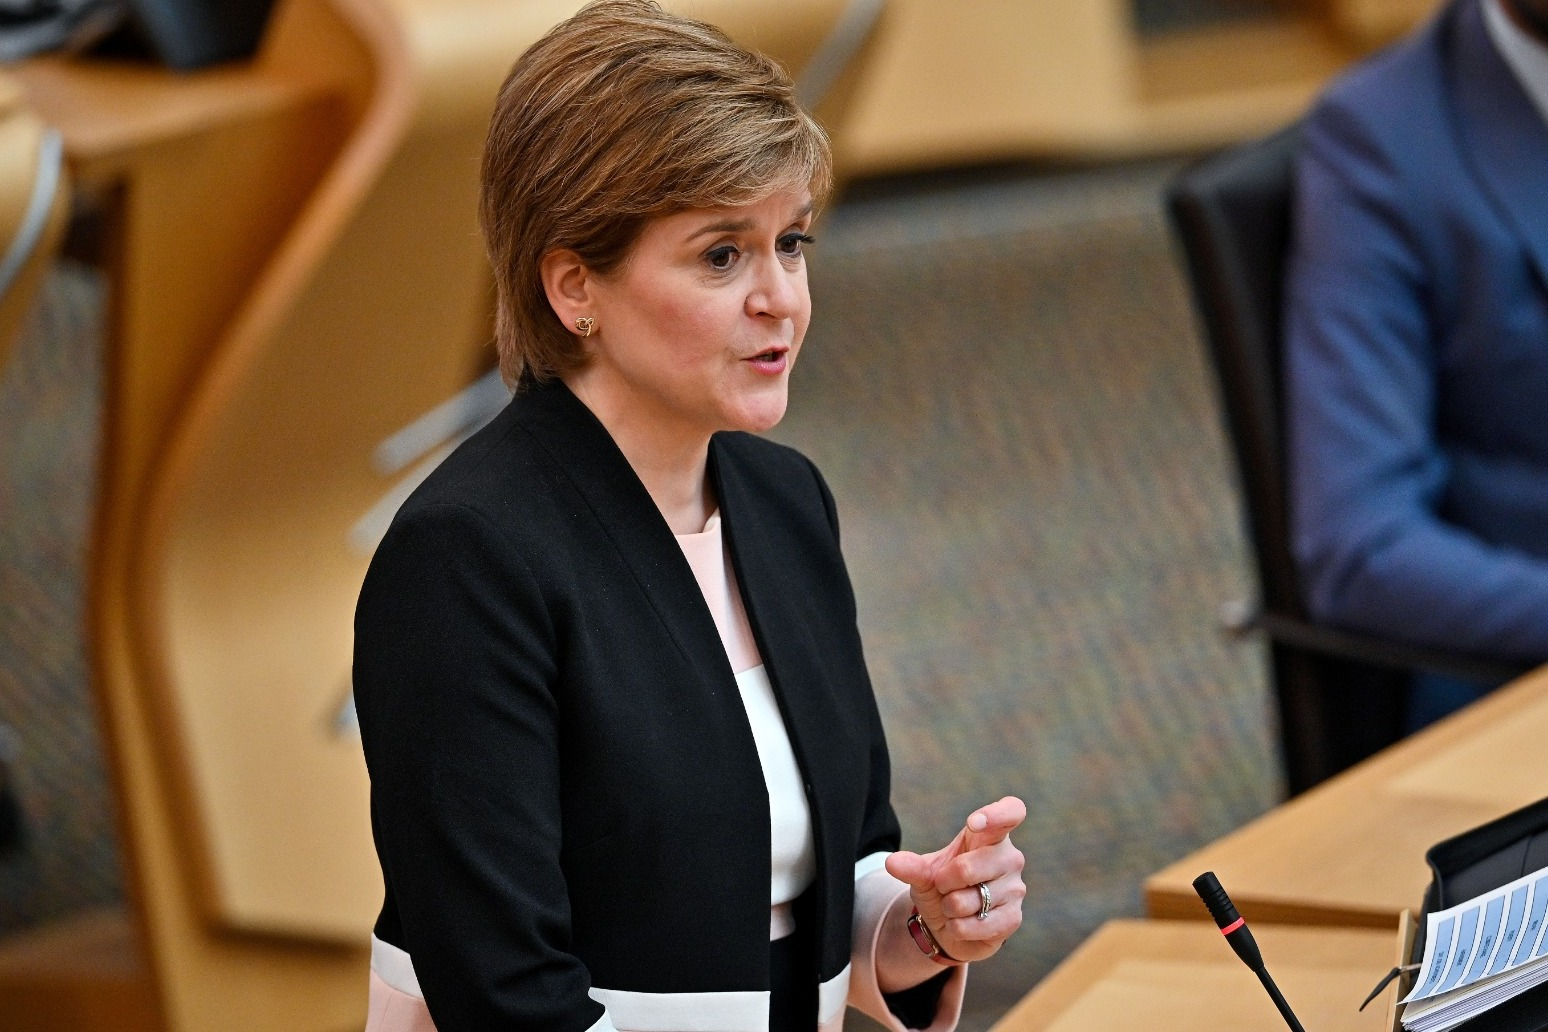 Restrictions need to be eased with 'care and caution', Sturgeon says